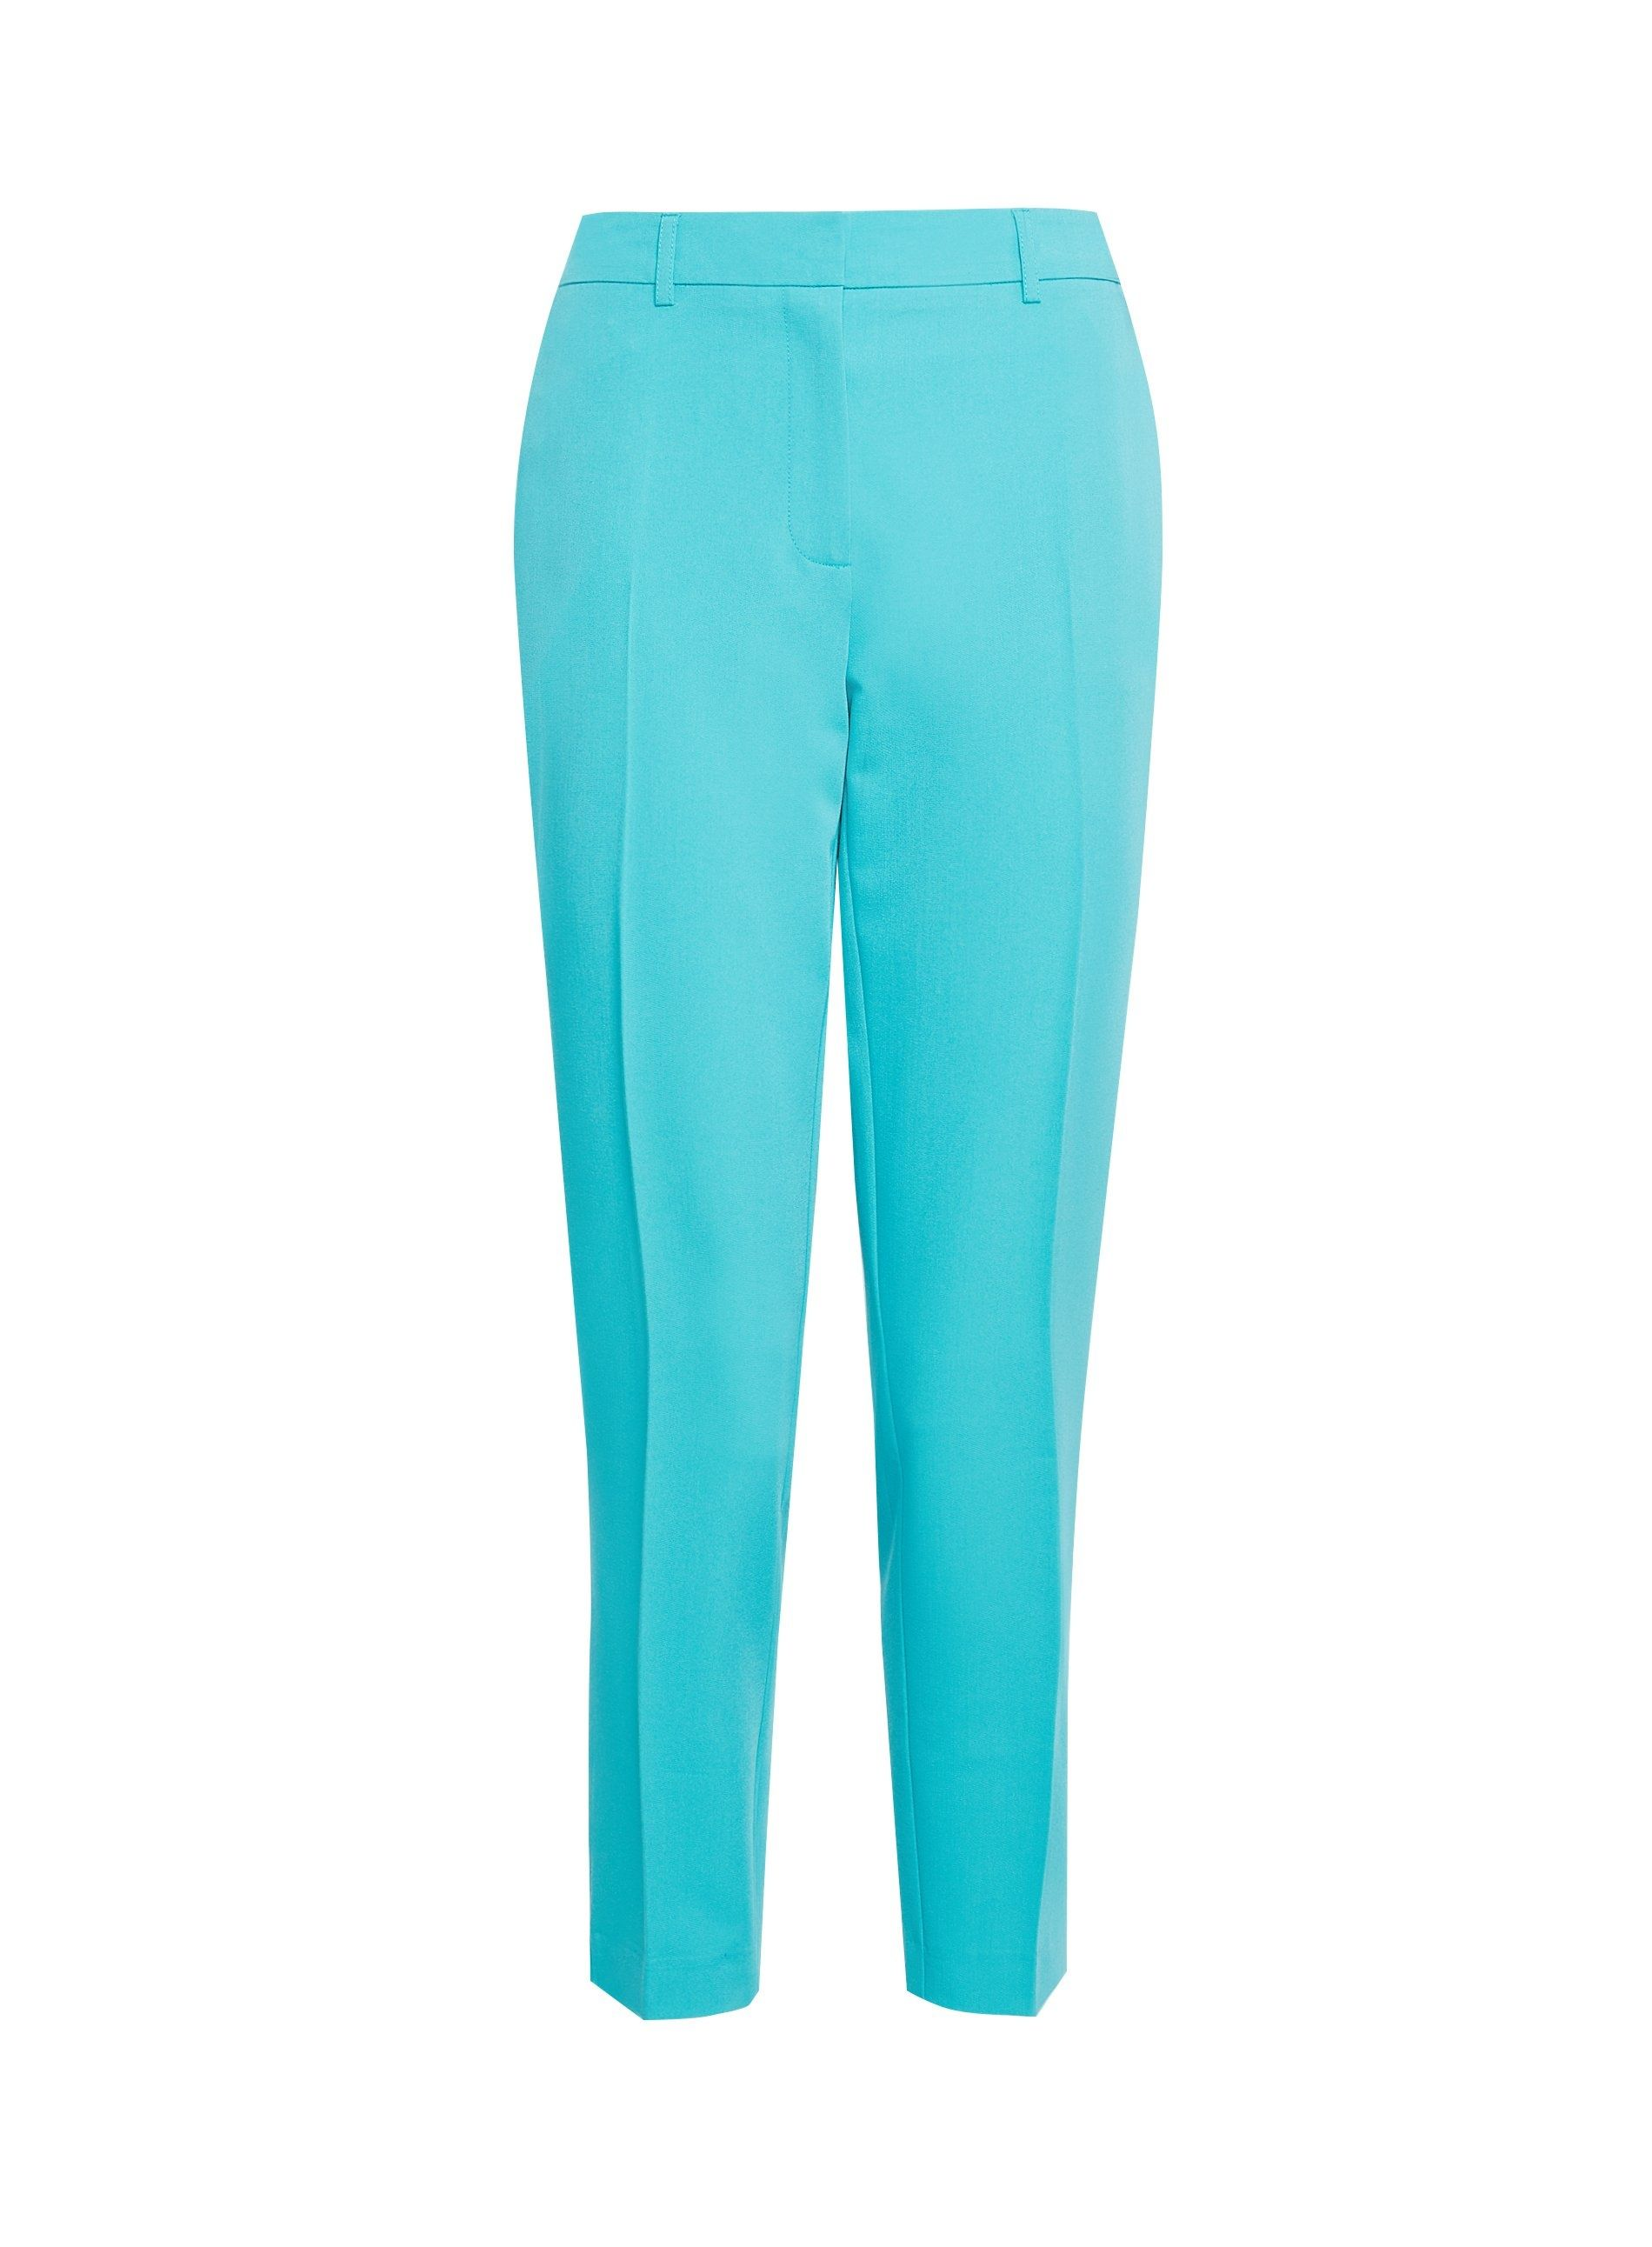 Dorothy Perkins Womens Blue Ankle Grazer Tailored Trousers Pants Bottoms